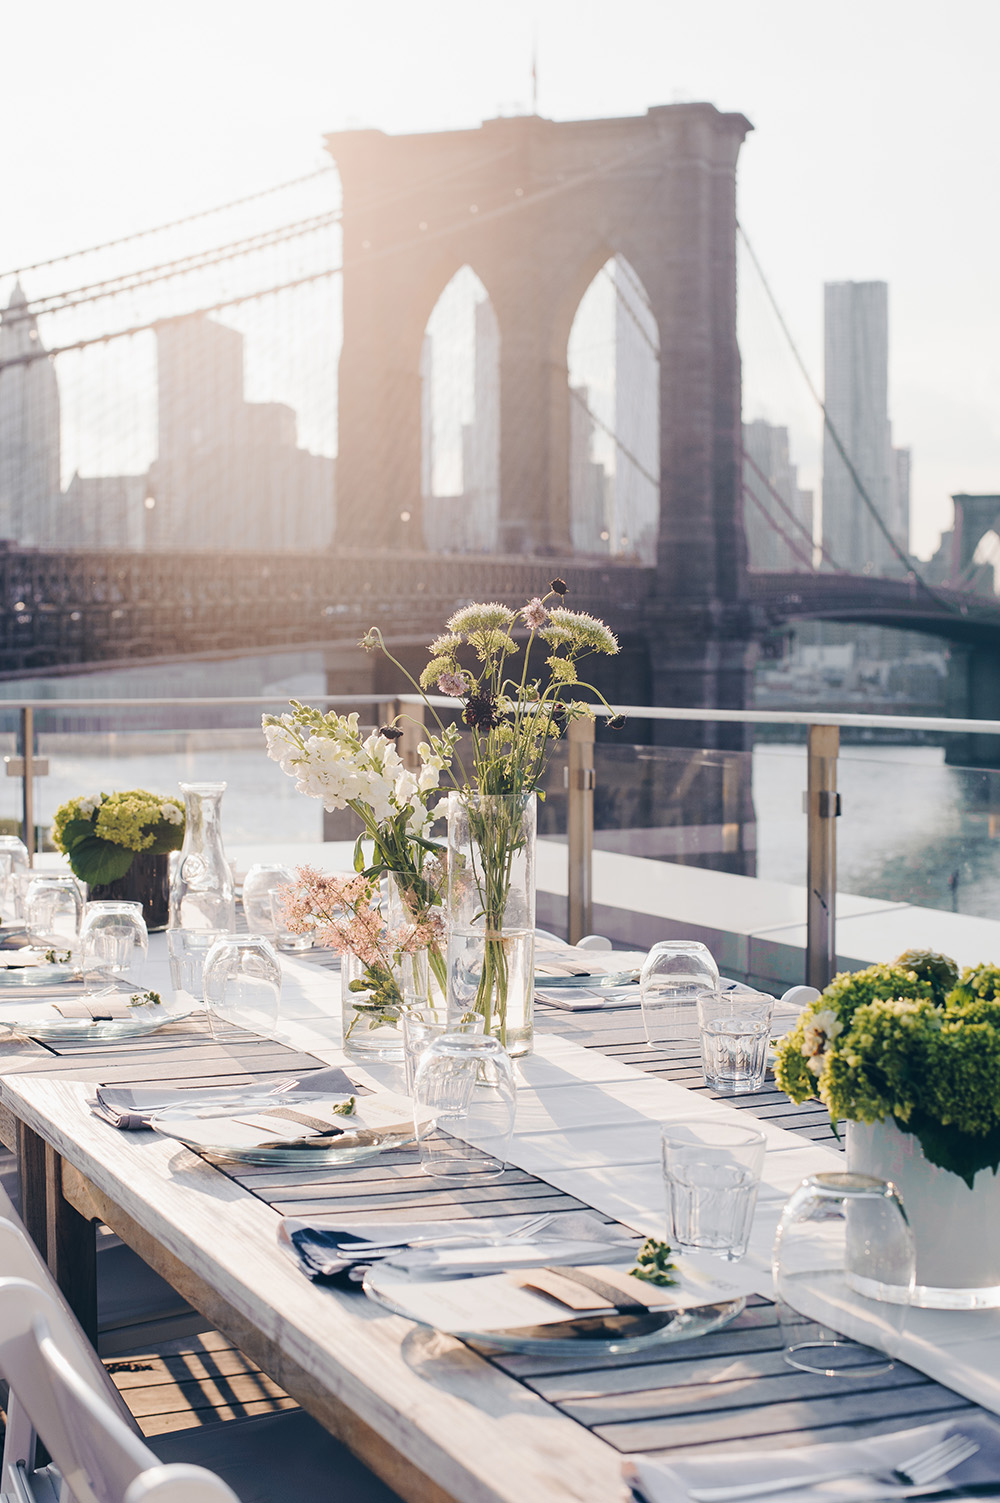 Beautifully set rooftop dinner table at sunset with the Brooklyn Bridge in the background